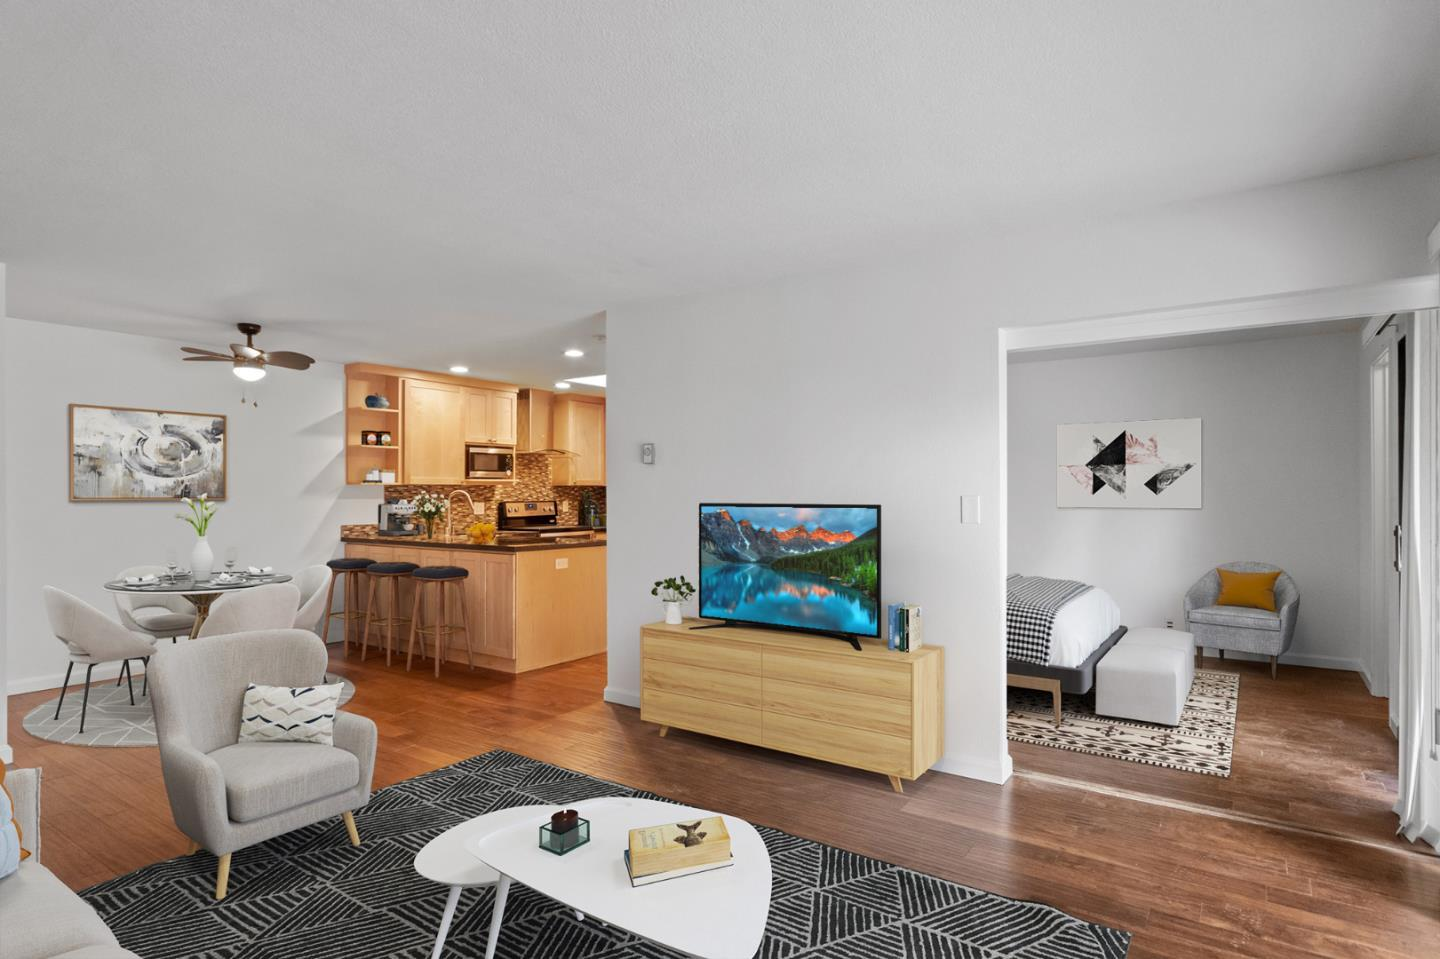 """Stunning remodel in 2016 - enjoy active living in a rarely available, bright, sunny, highly sought after """"penthouse"""" unit in building """"A"""" at Menlo Commons, an active 55+ adult community. A302 is a top flr 2-bed (with walk-in closets), 2-bath condo in the best 22-unit building with natural light through skylights/sliding glass doors, hardwood floors, free-flowing open kitchen (granite counters/stainless steel appliances), dining & living space, 2 private balconies/patios, main patio off of living room has exterior walk-in storage. Additional attic storage accessible from walk-in closets in bedrooms. This 122-unit complex has lush green landscaping, a heated pool, club room, gazebo, spa, exercise room, and is close to Stanford University & Hospital, Stanford Mall, Sharon Heights shopping, transportation and easy access to I-280. HOA dues include basic cable/phone service, water, garbage. HOA requires that at least one resident must be 55+. Use lockbox or call Agent for a private showing."""